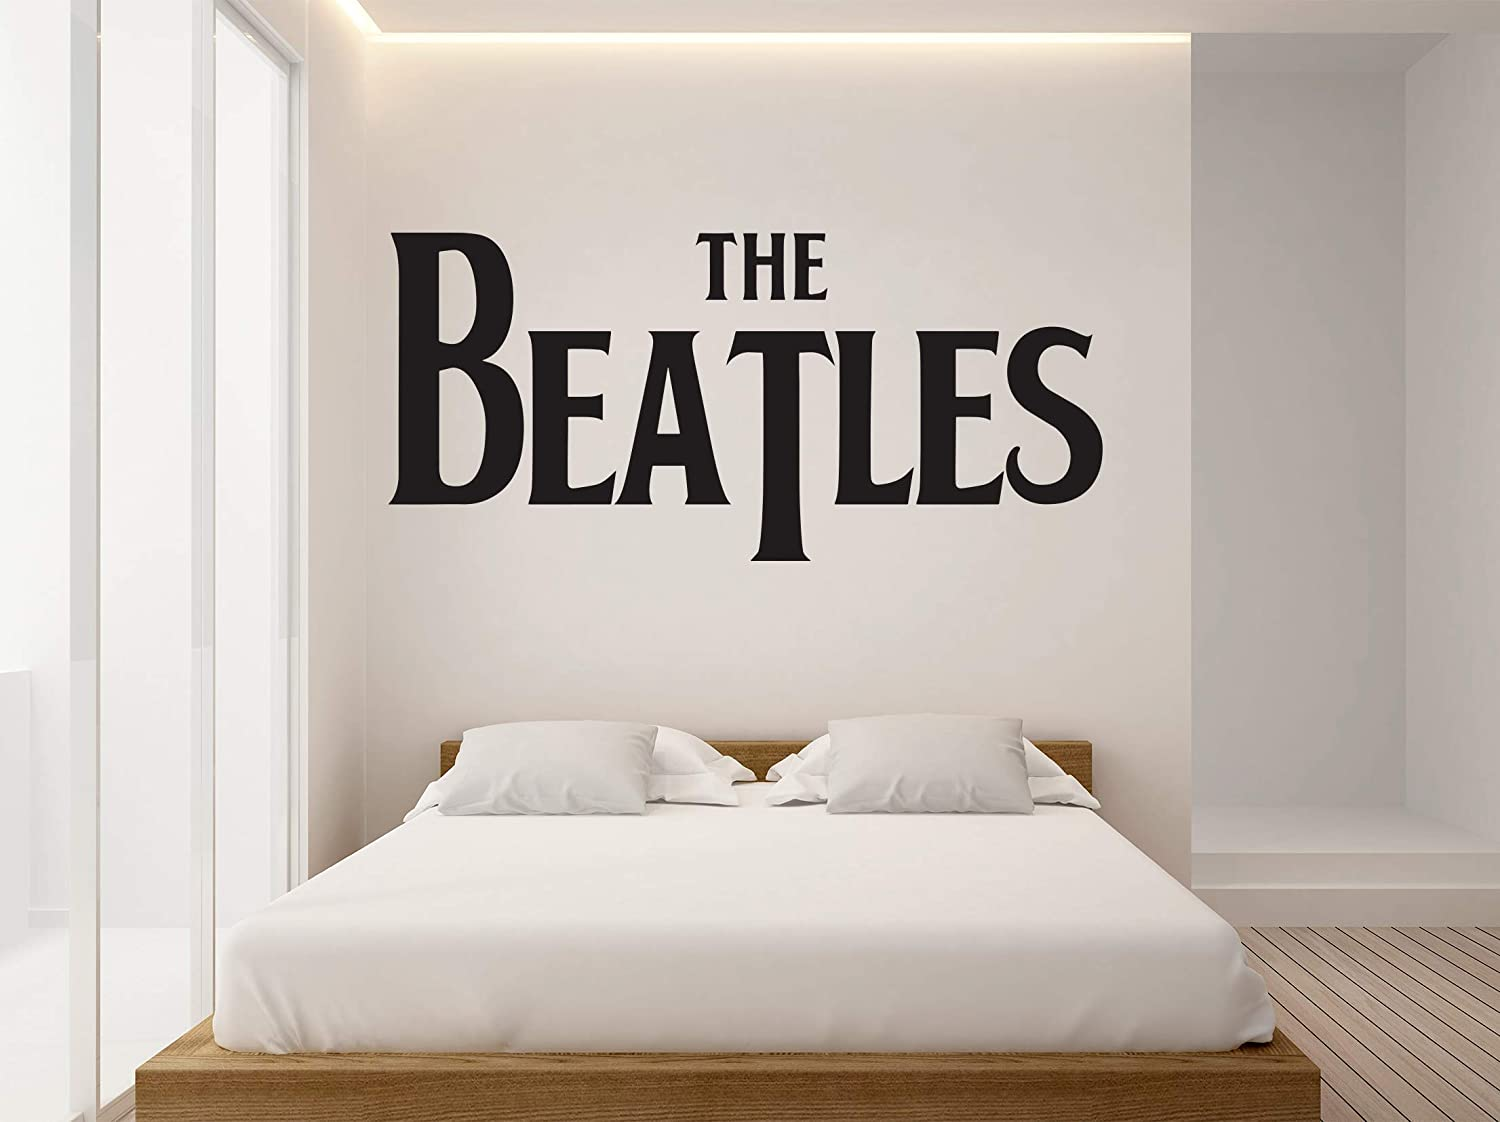 "The Beatles Logo - Wall Decal Bedroom, Home Interior Decoration Car Laptop (30"" x 14"")"